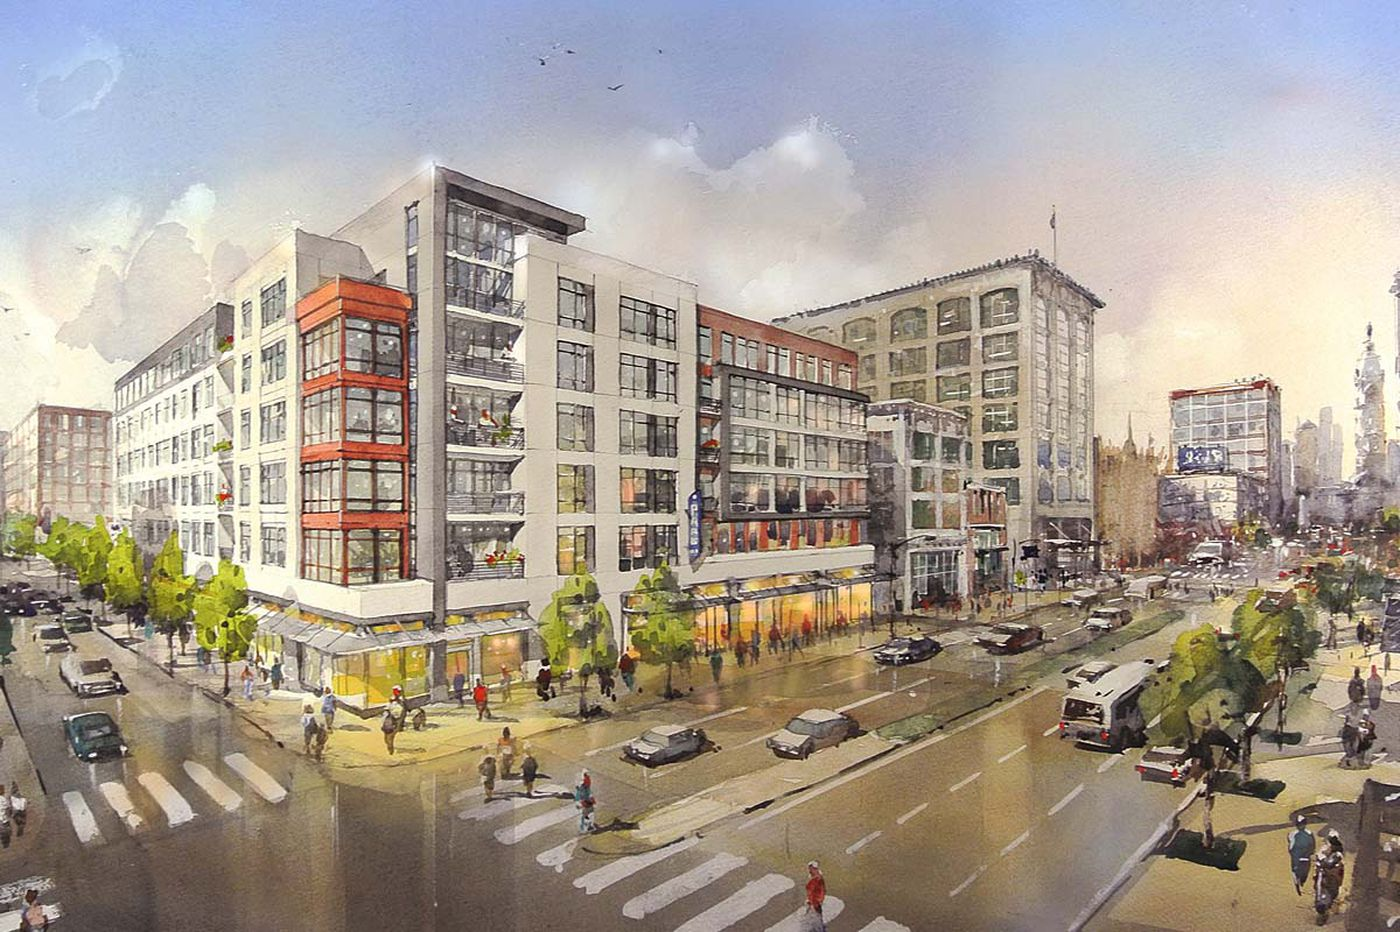 Surge of new apartments could tip central Philly into surplus, study finds